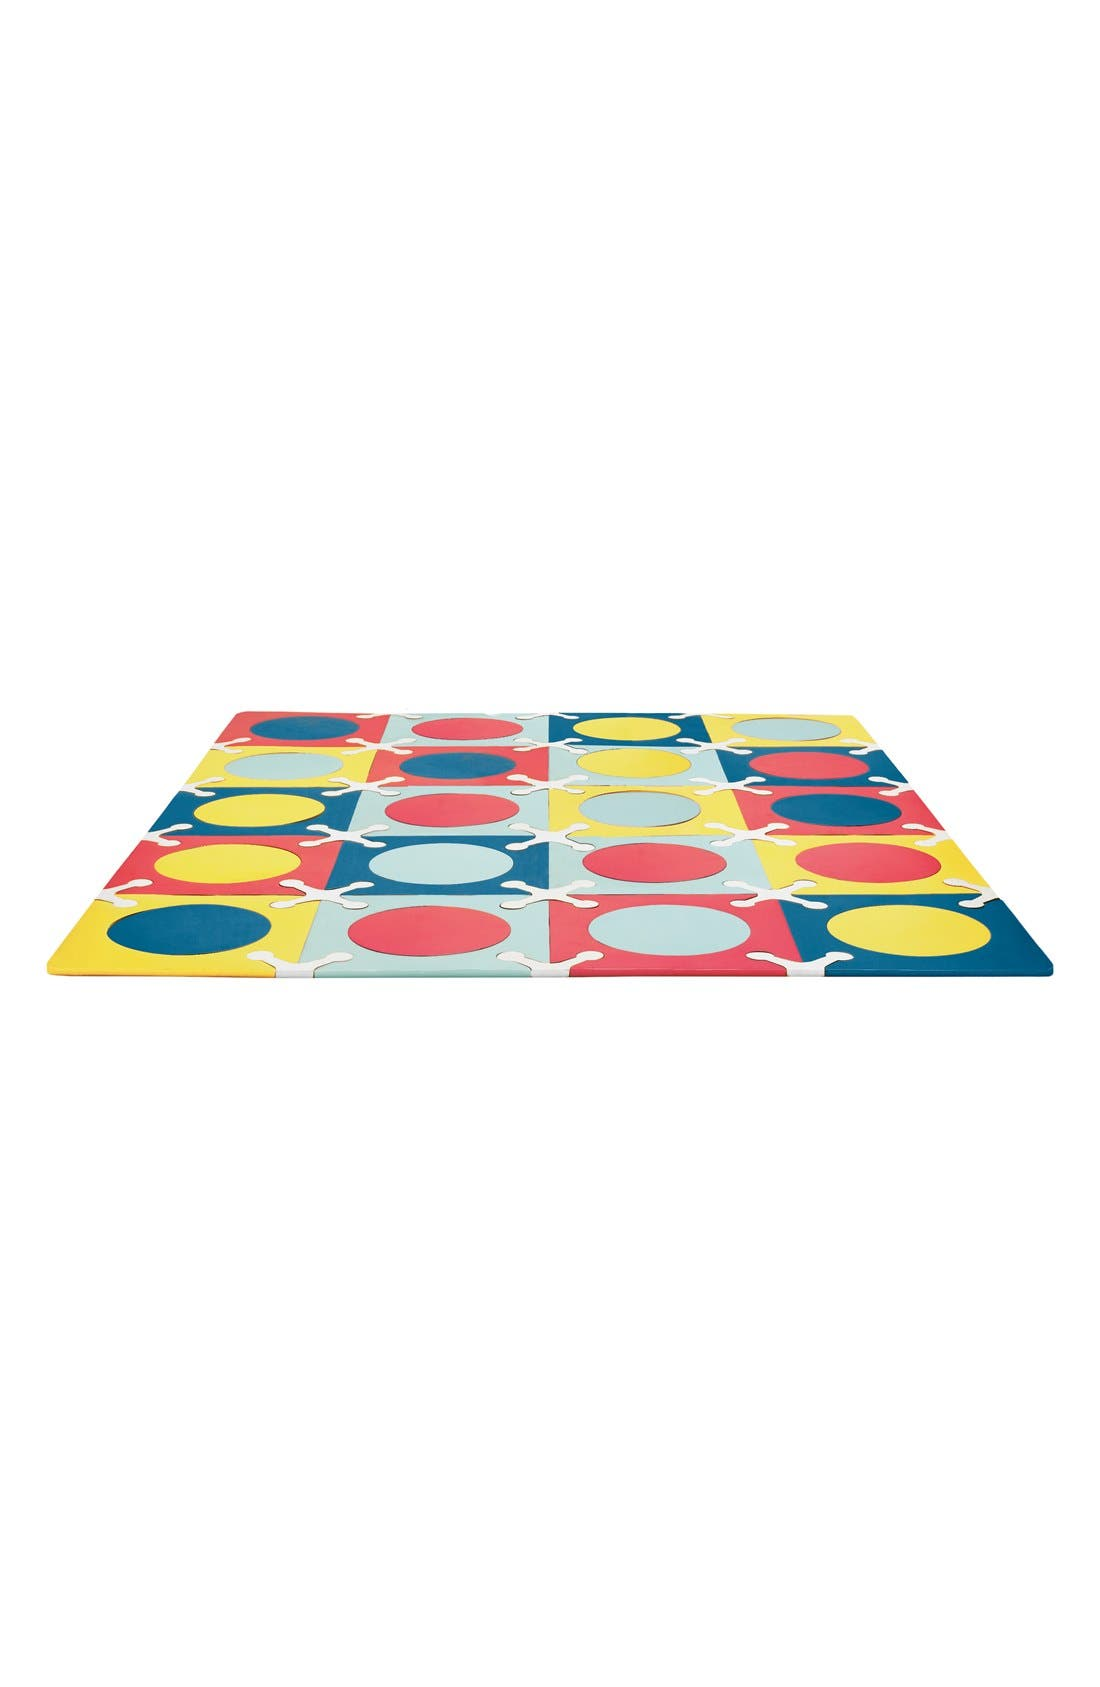 Skip Hop 'Playspot' Floor Tiles